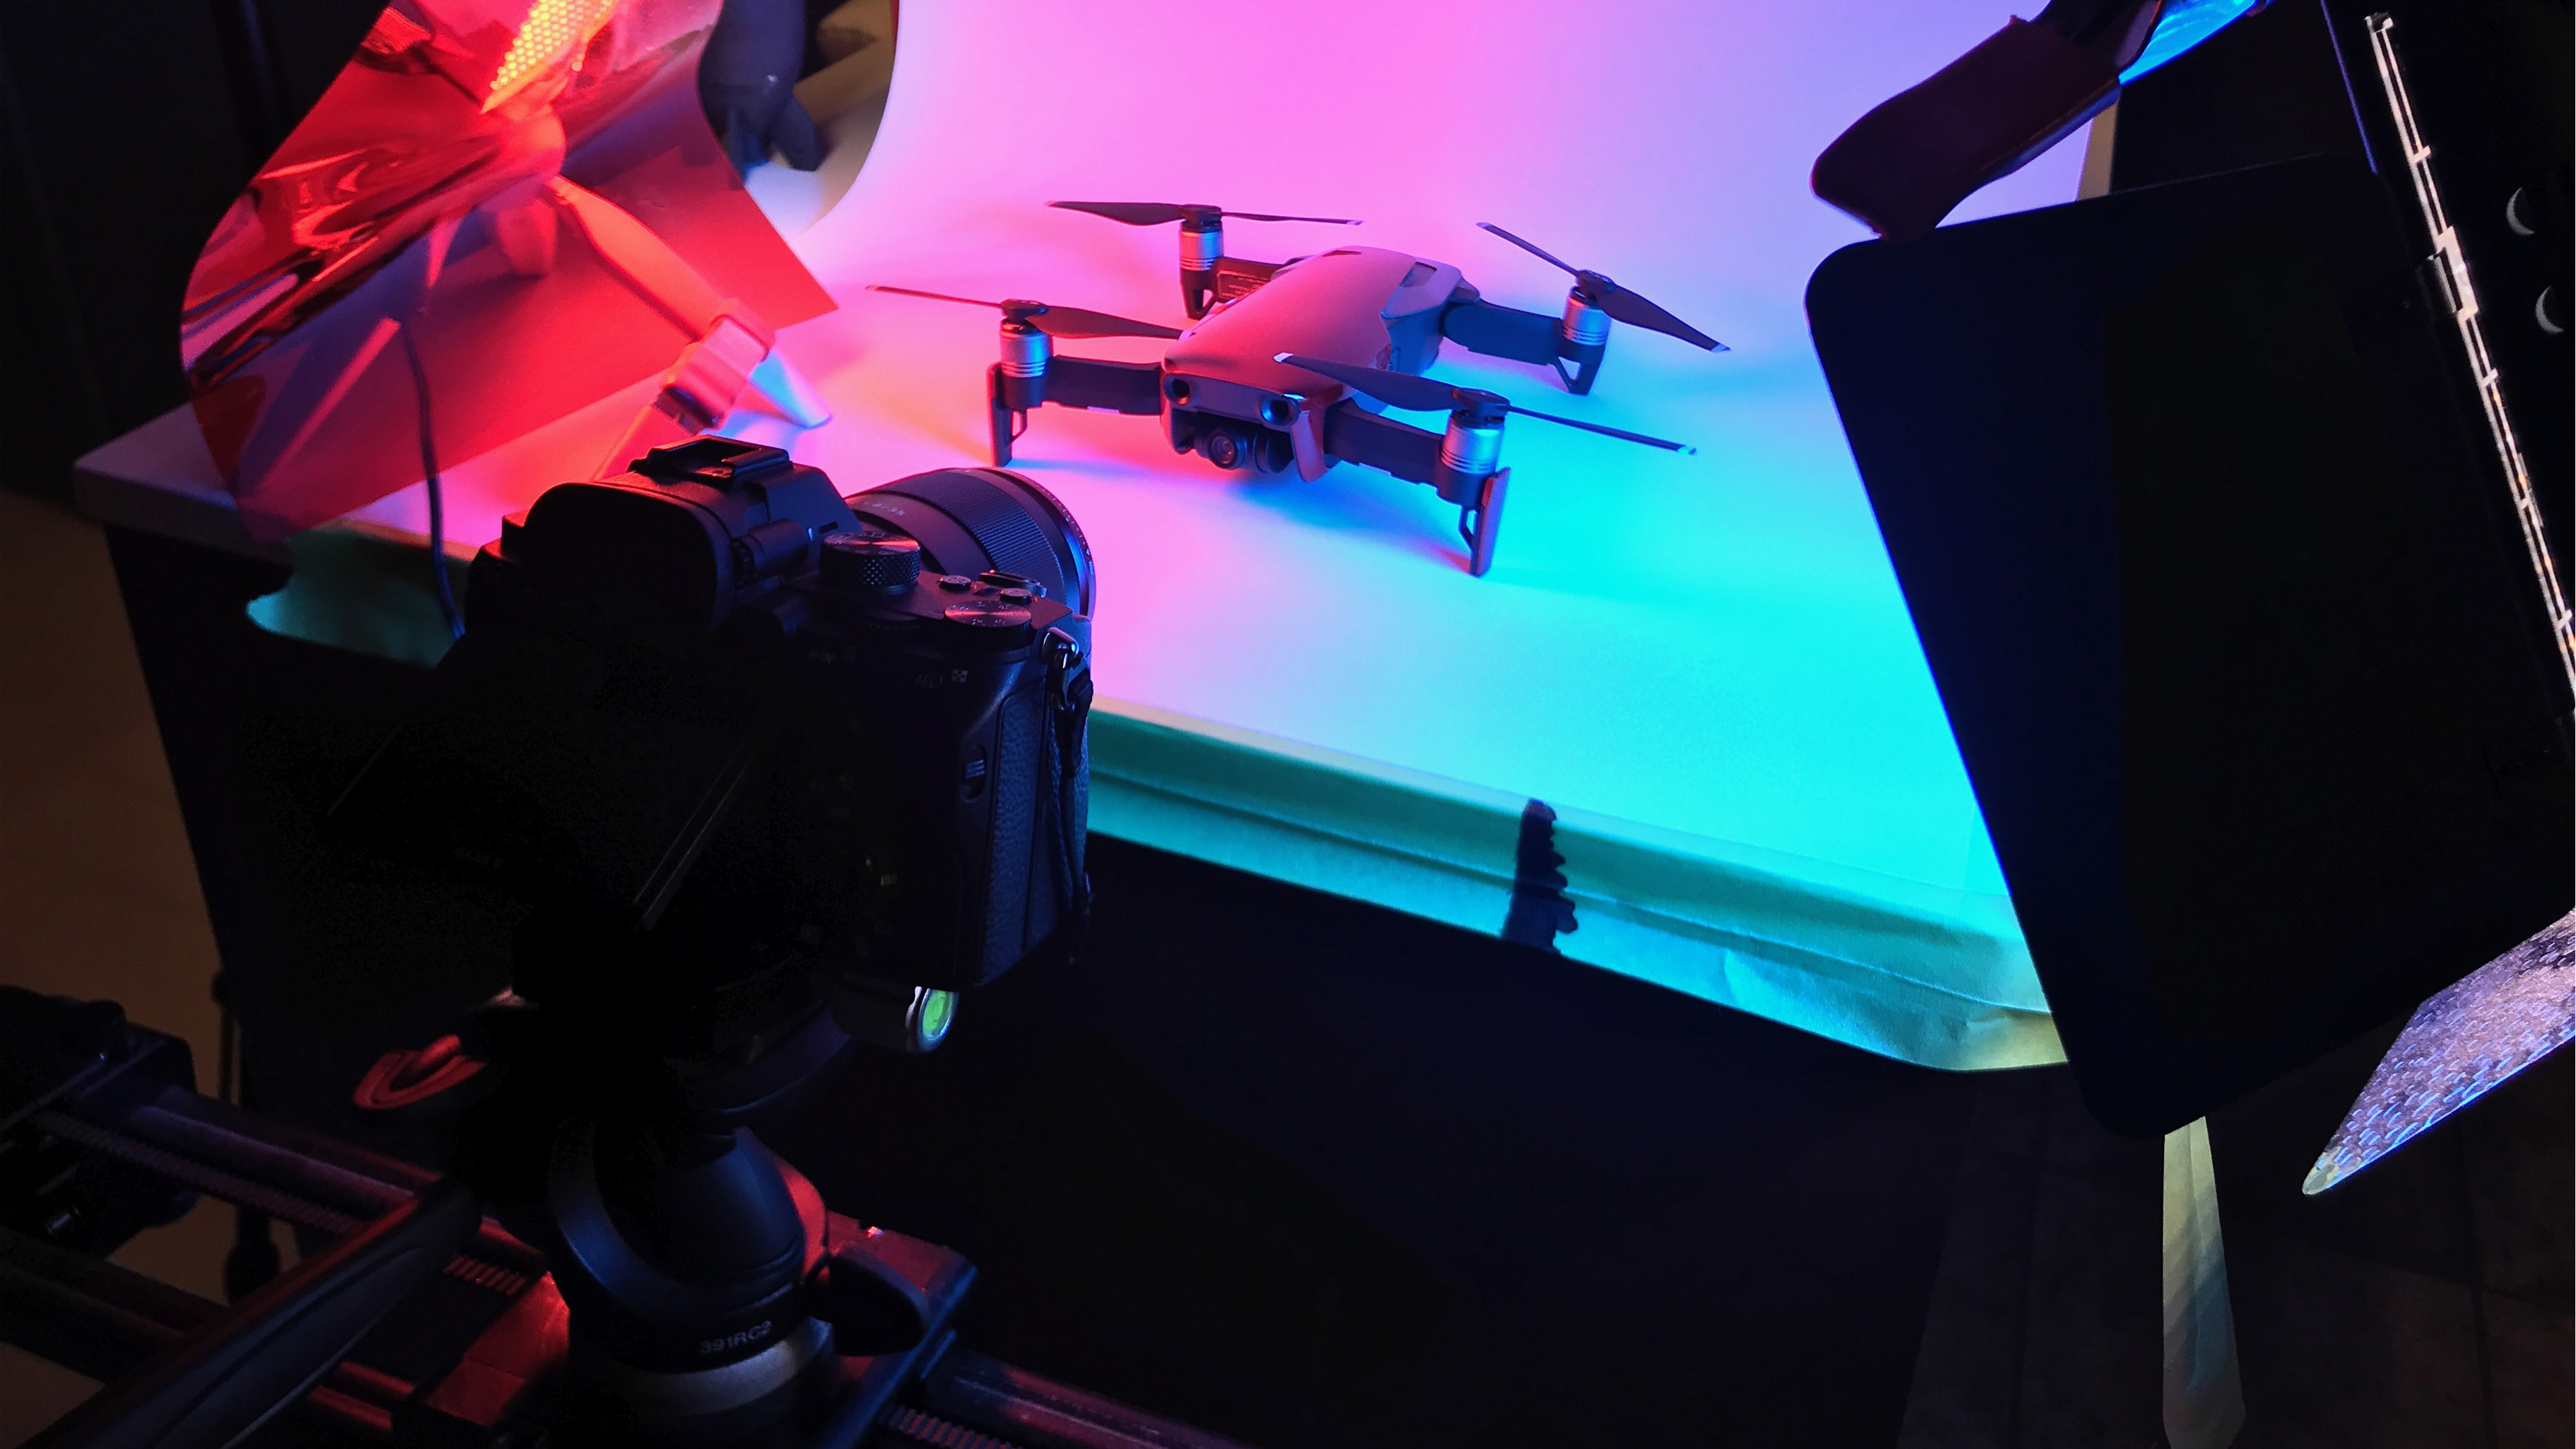 Colourful lighting and a super smooth camera slider.